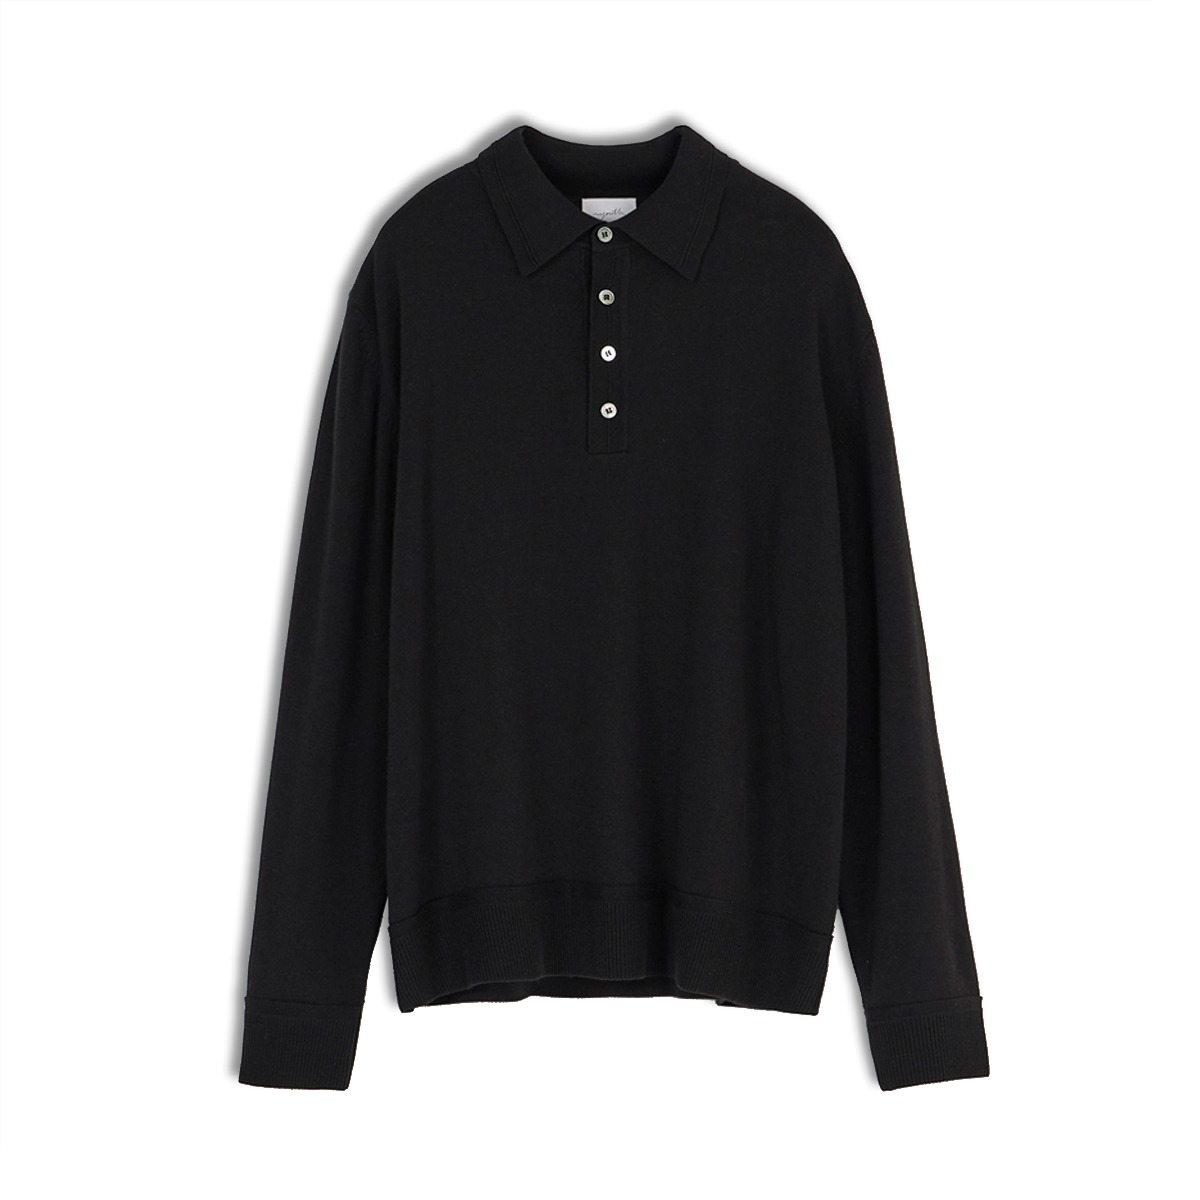 [YOUTH] KNIT COLLAR T-SHIRT 'BLACK'